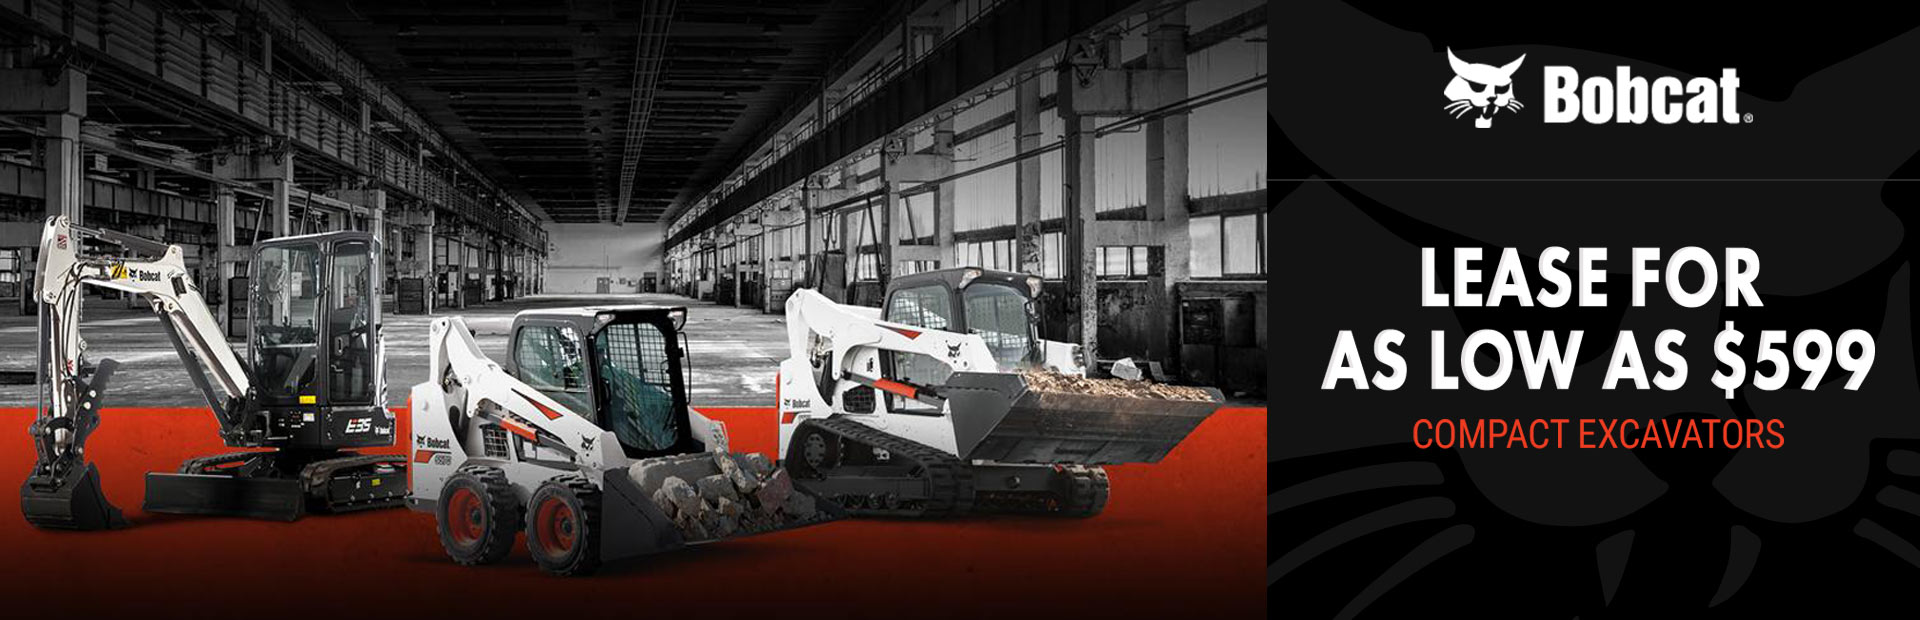 Bobcat: Lease Bobcat Compact Excavators For As Low As $599